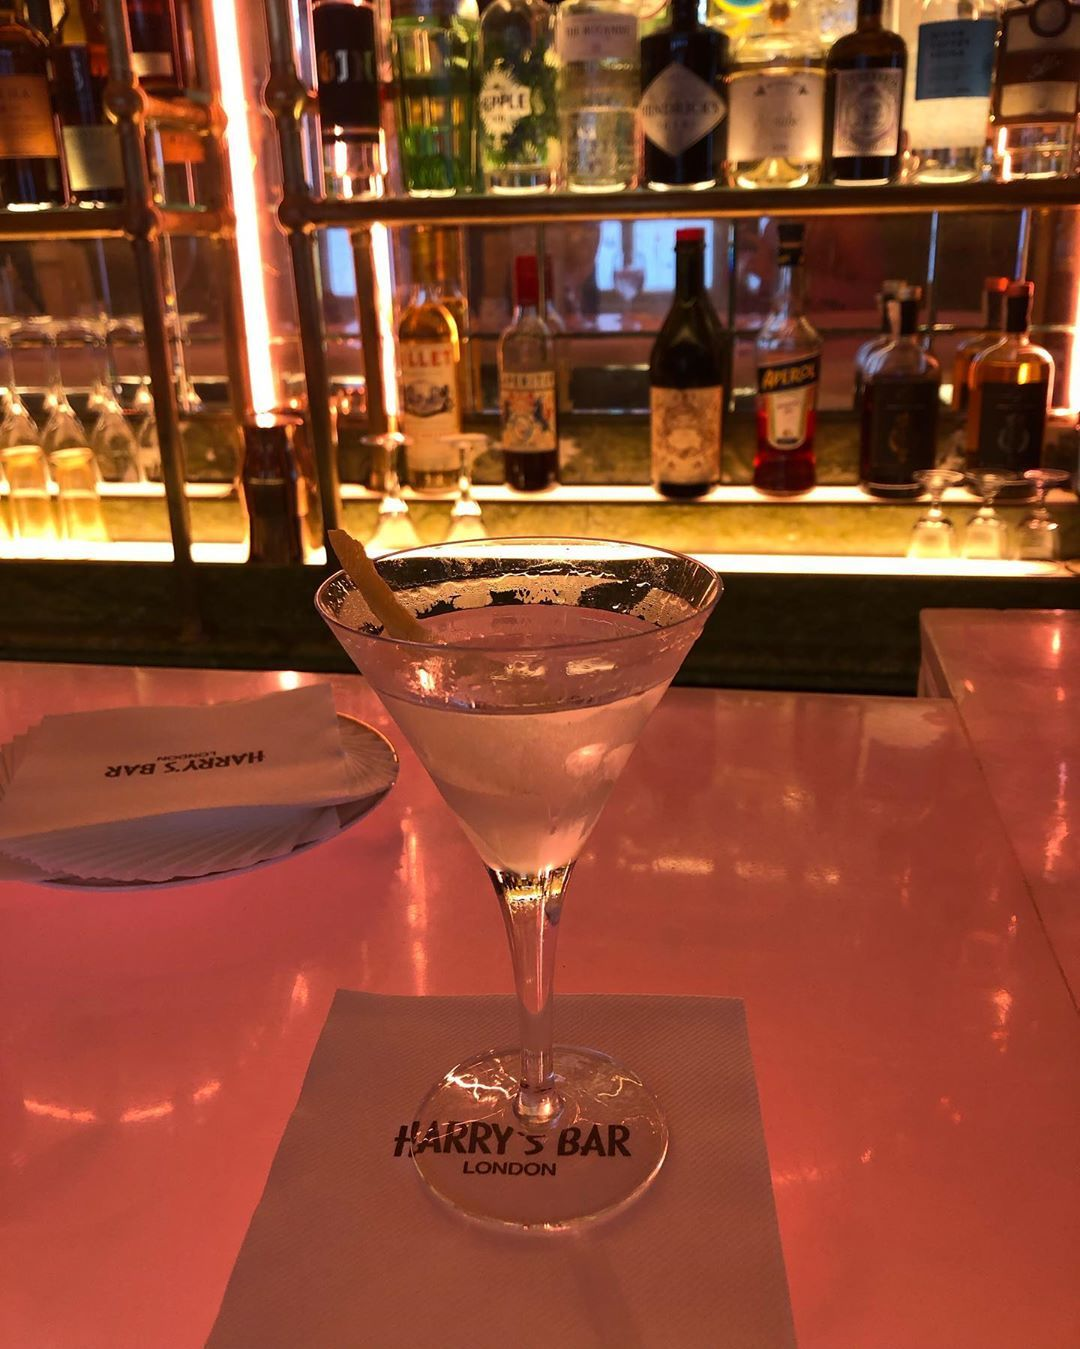 Martini Luciano Harrys Bar London Now Top In 2020 London Bars London Now Instagram Posts